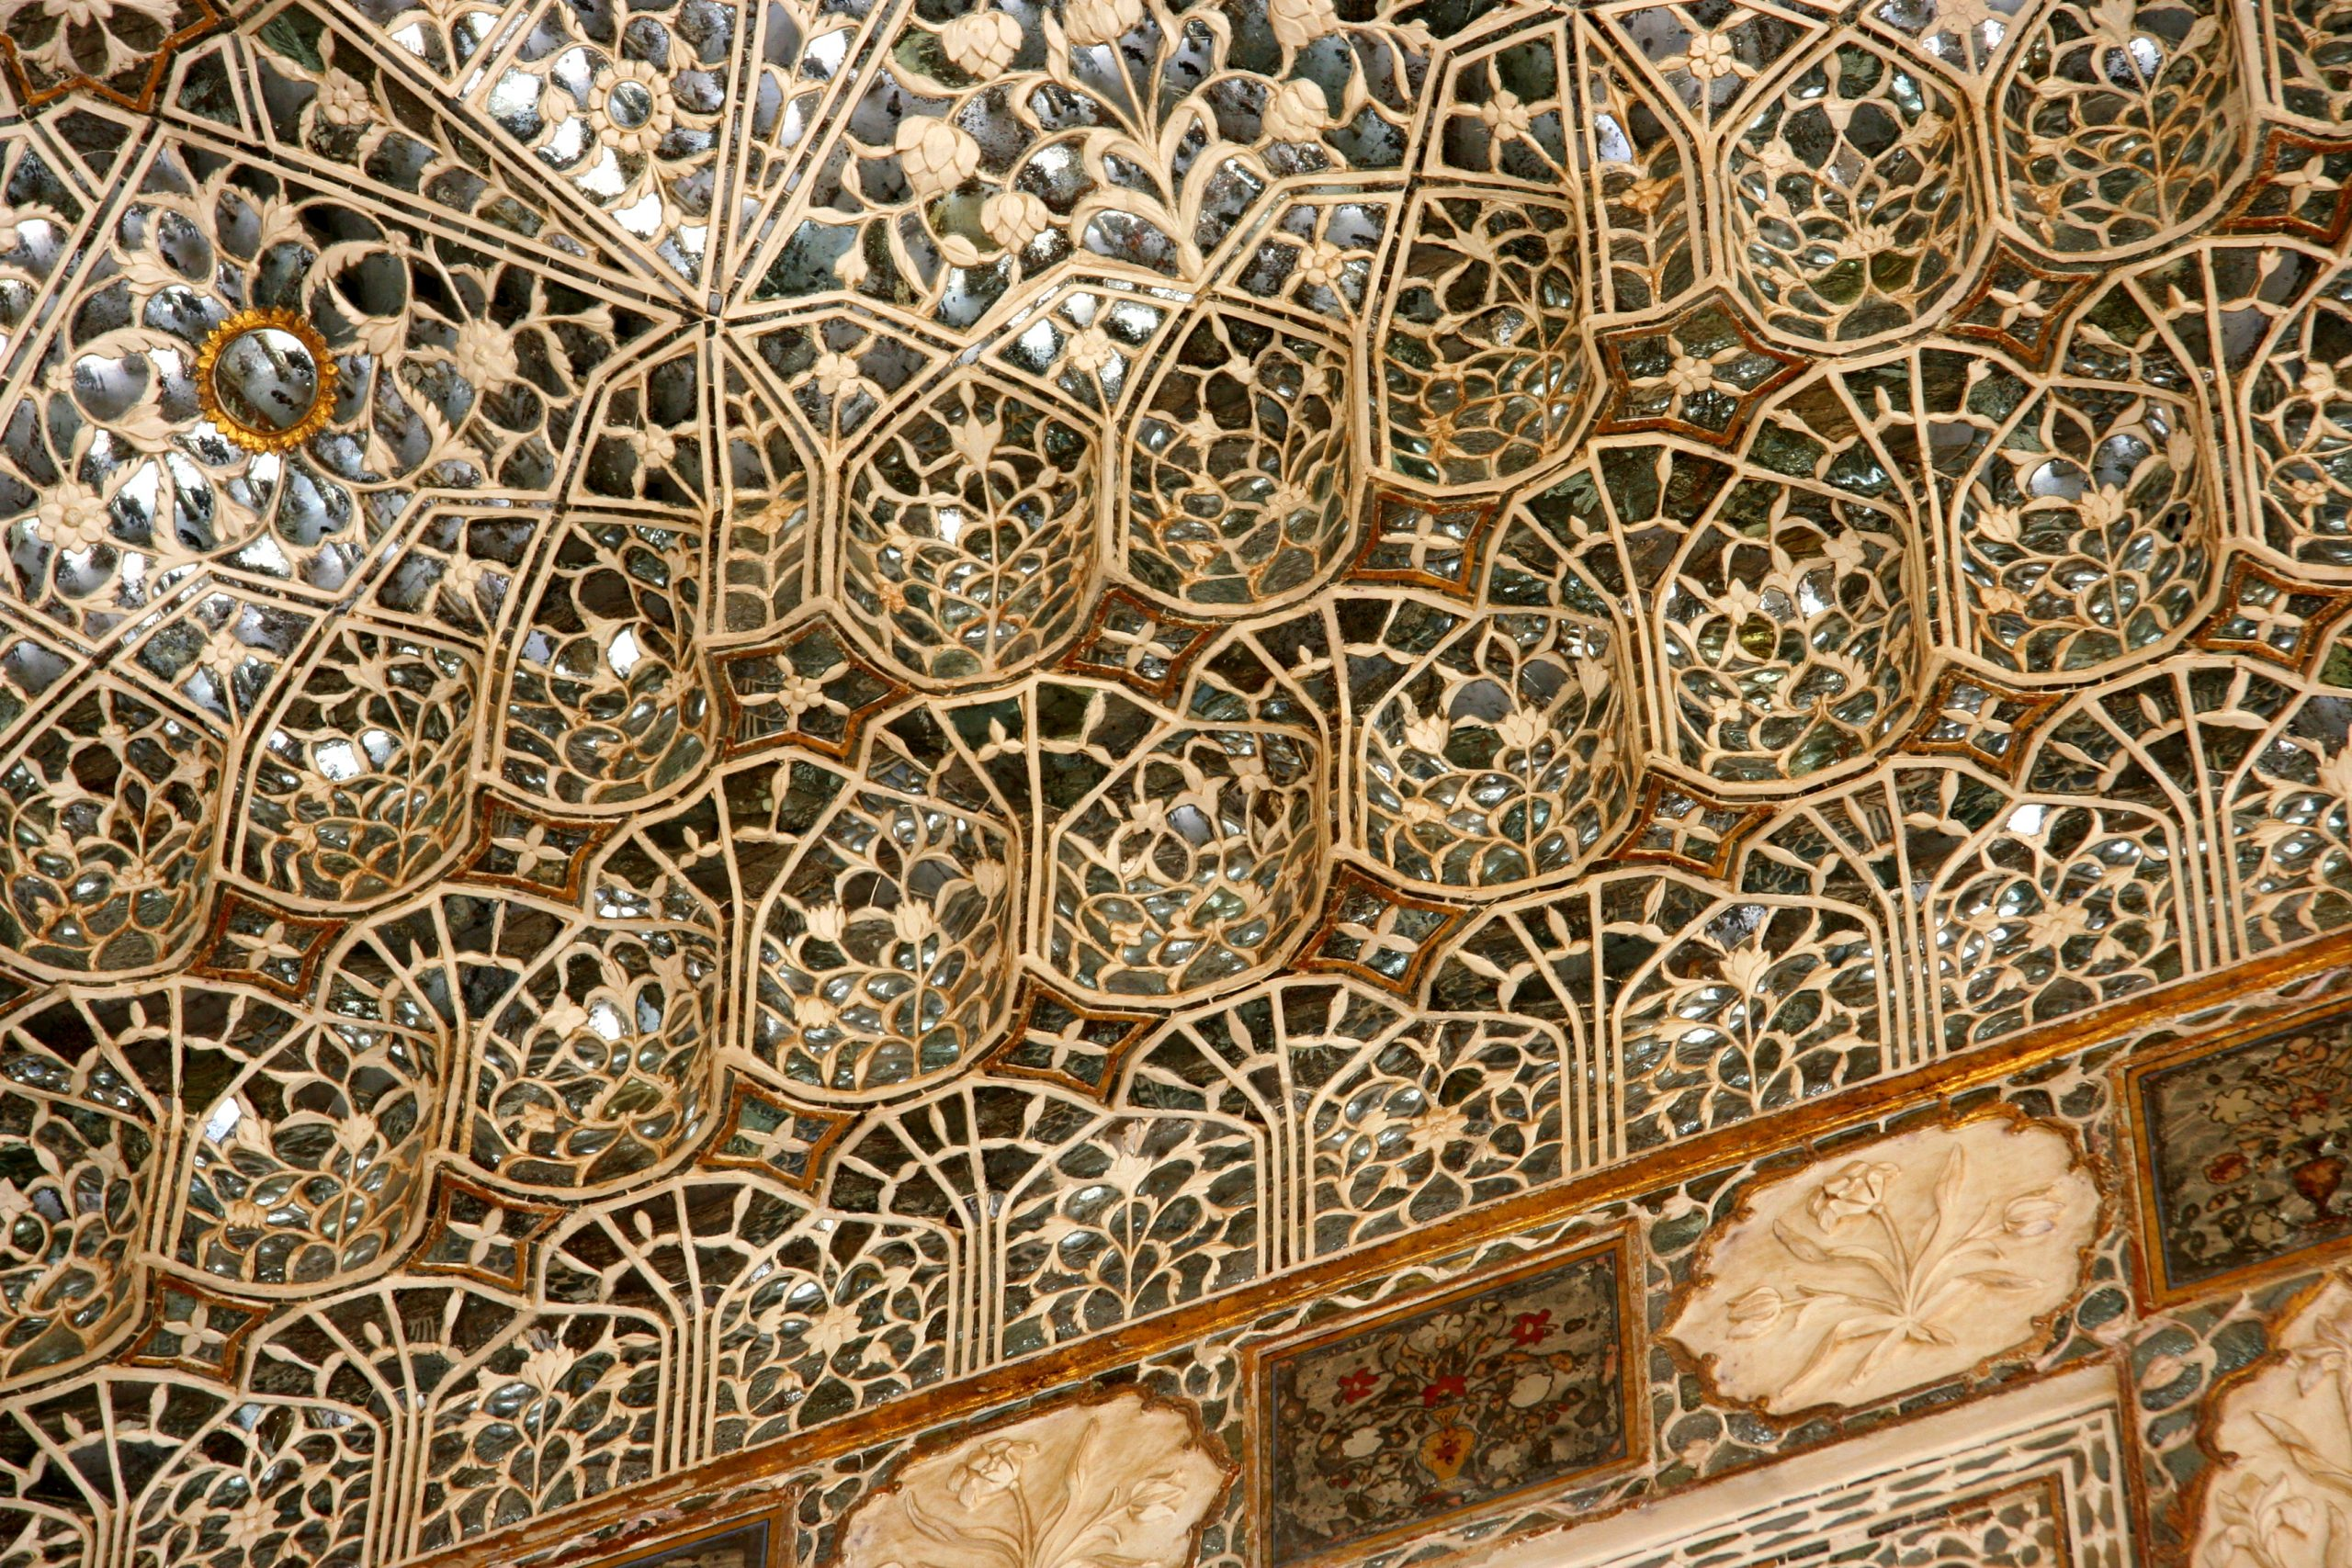 2015, Ceiling of Sheesh Mahal, Amer Palace, Jaipur, India